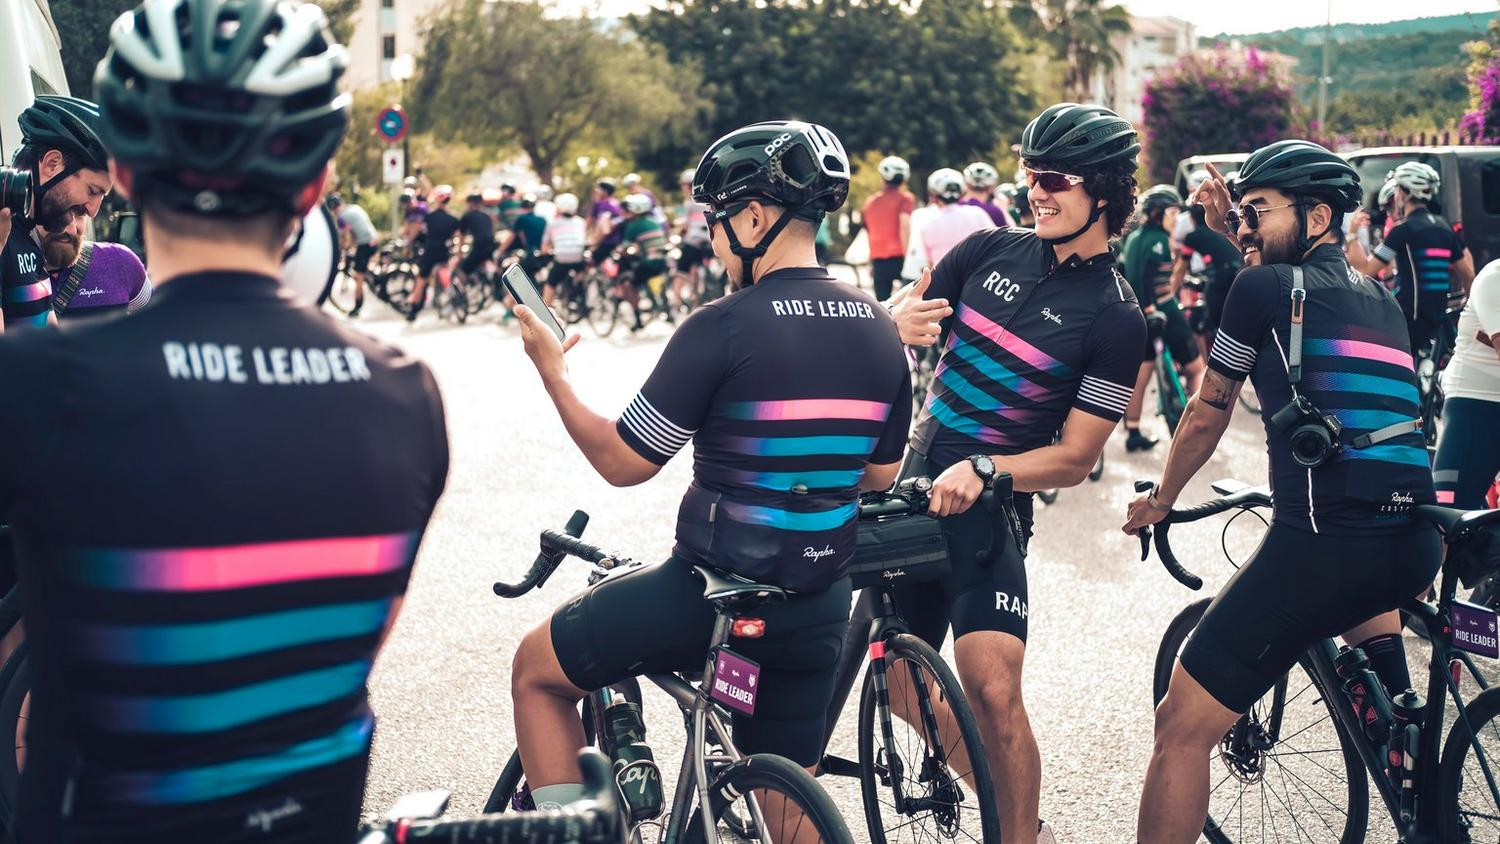 Rapha Cycling Club - Community Ride Leaders